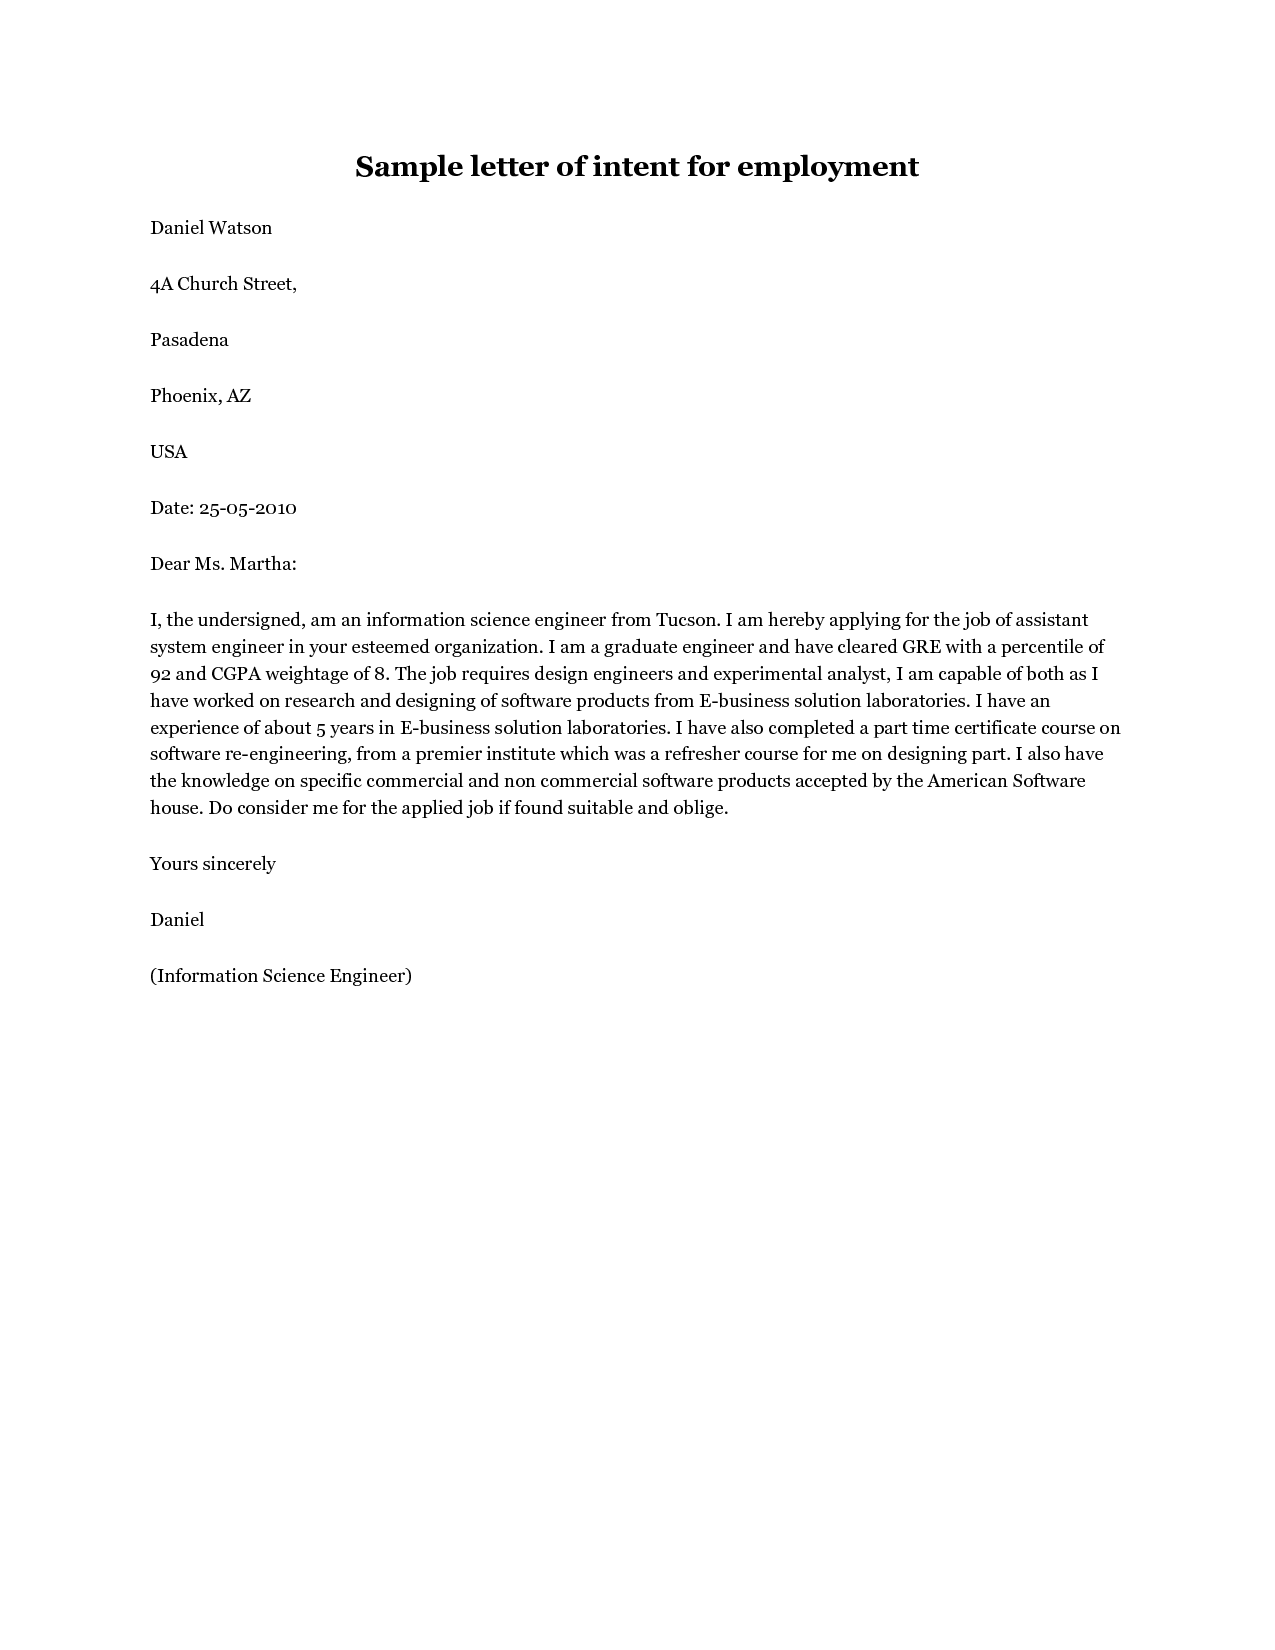 sample letter of intent job application sample letter of intent for employment - Job Promotion Letter Of Intent